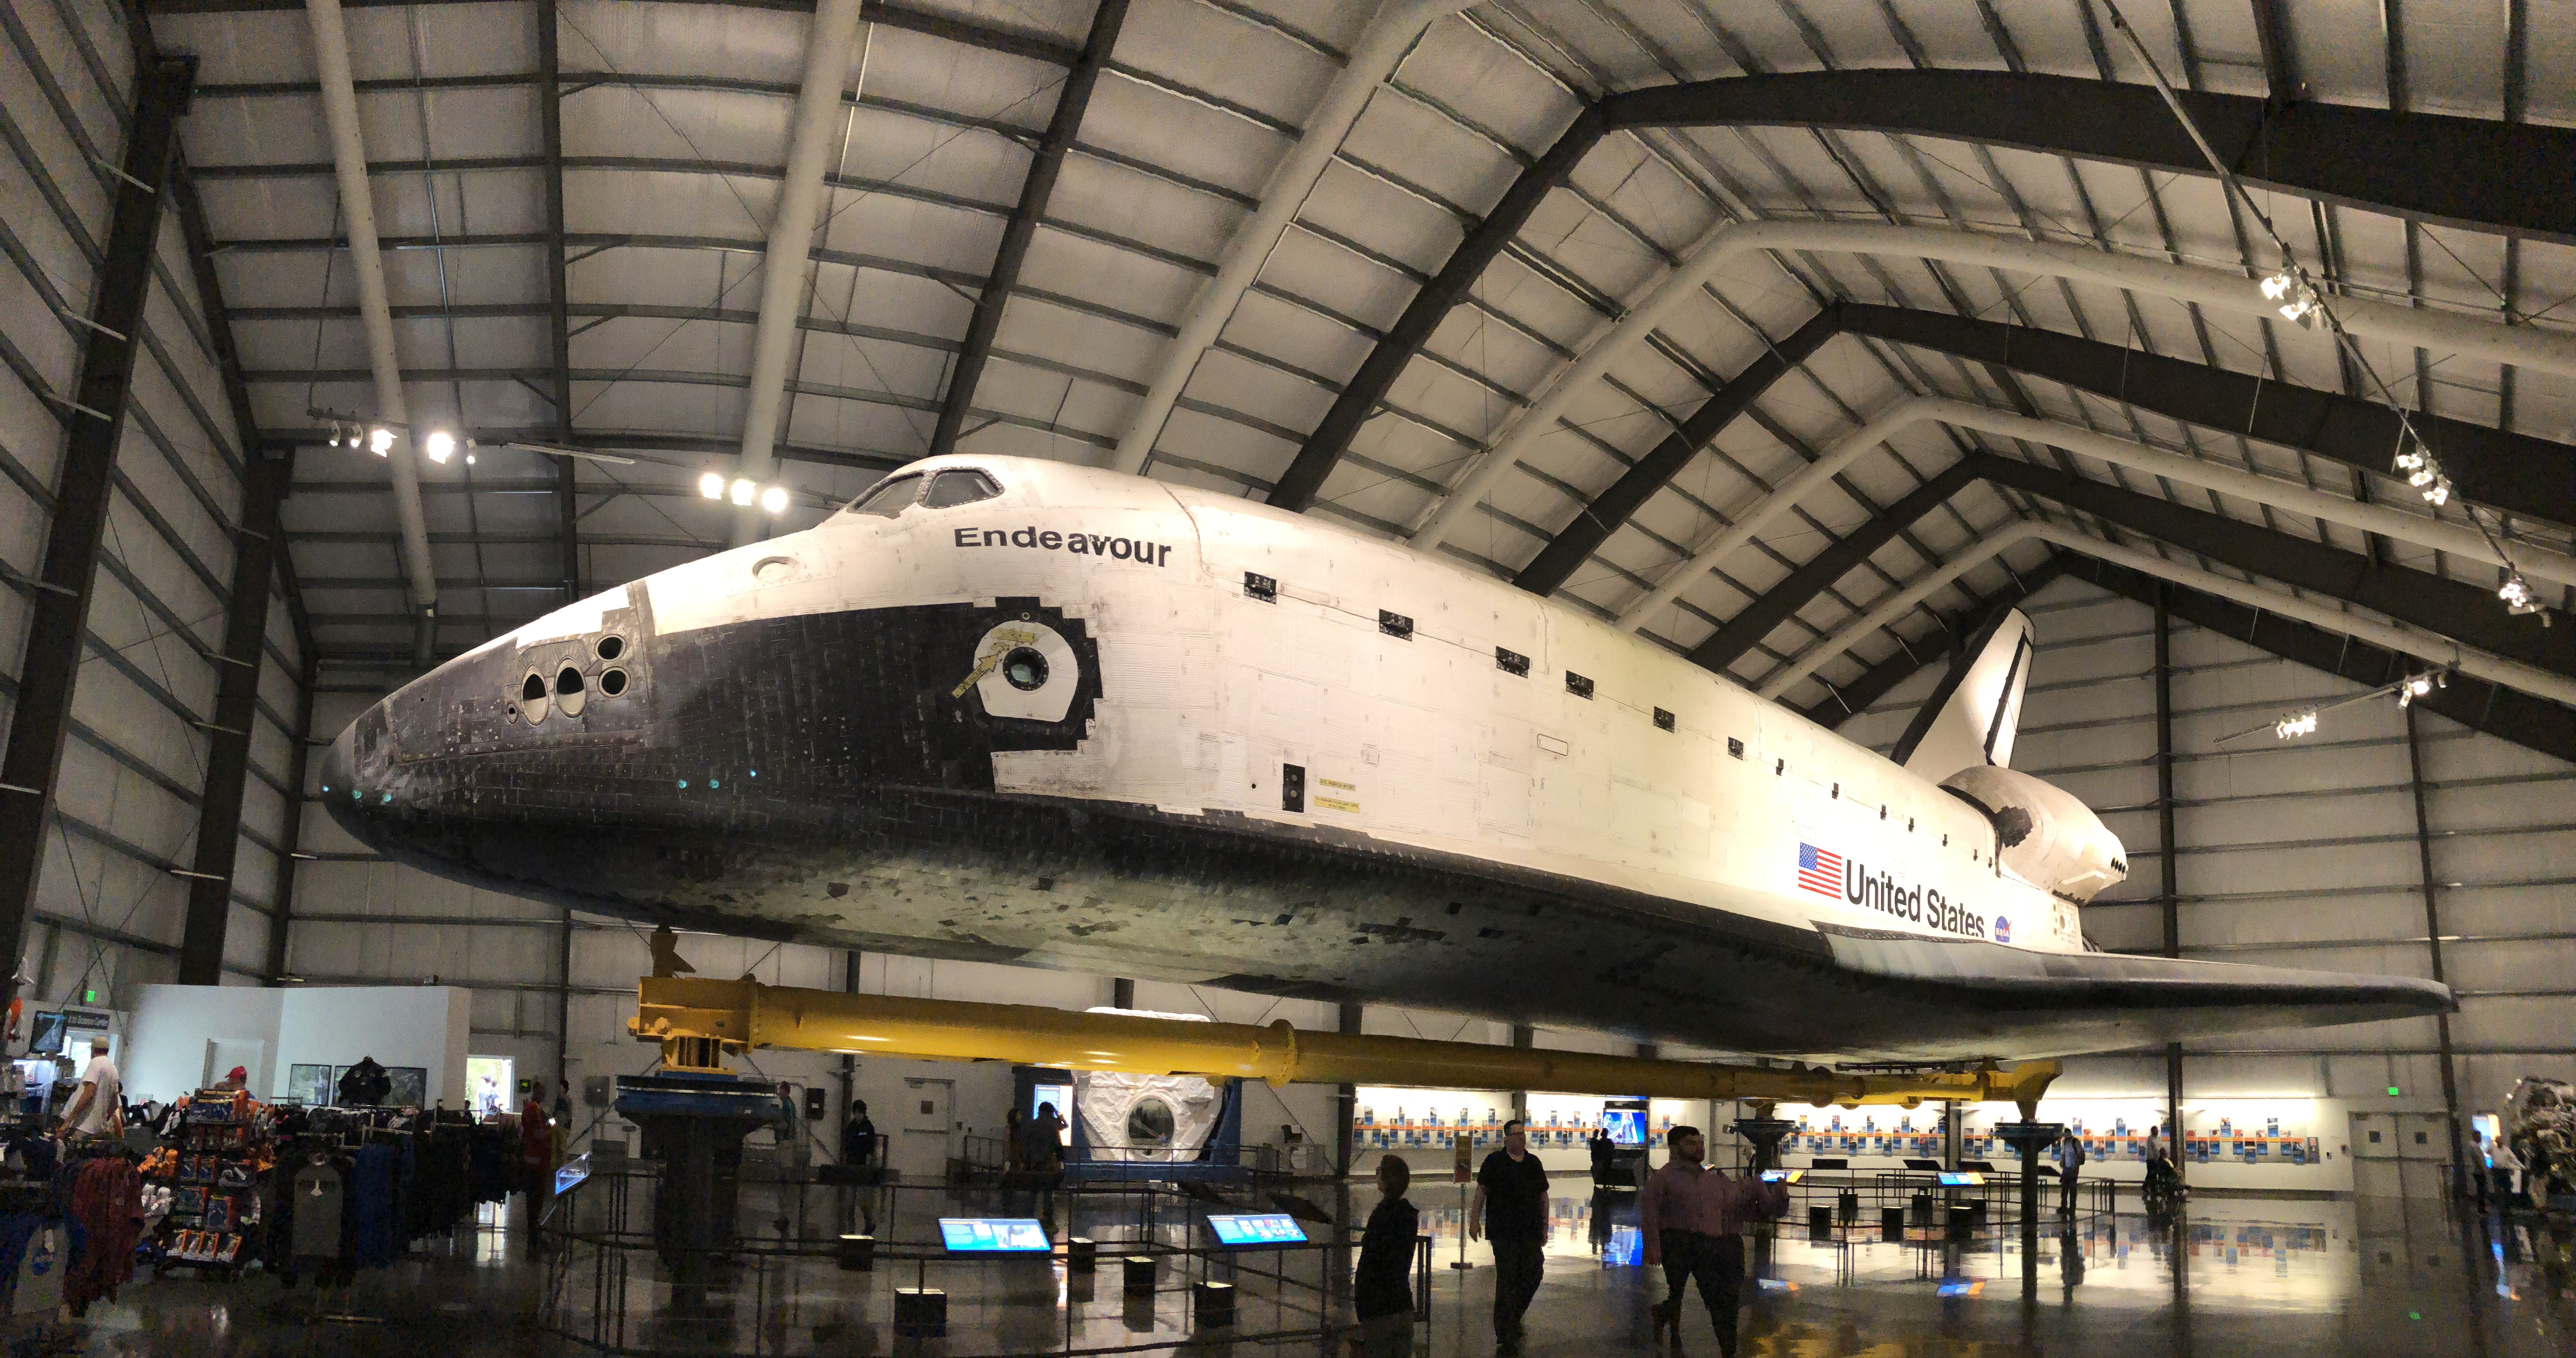 The Space Shuttle Endeavor!